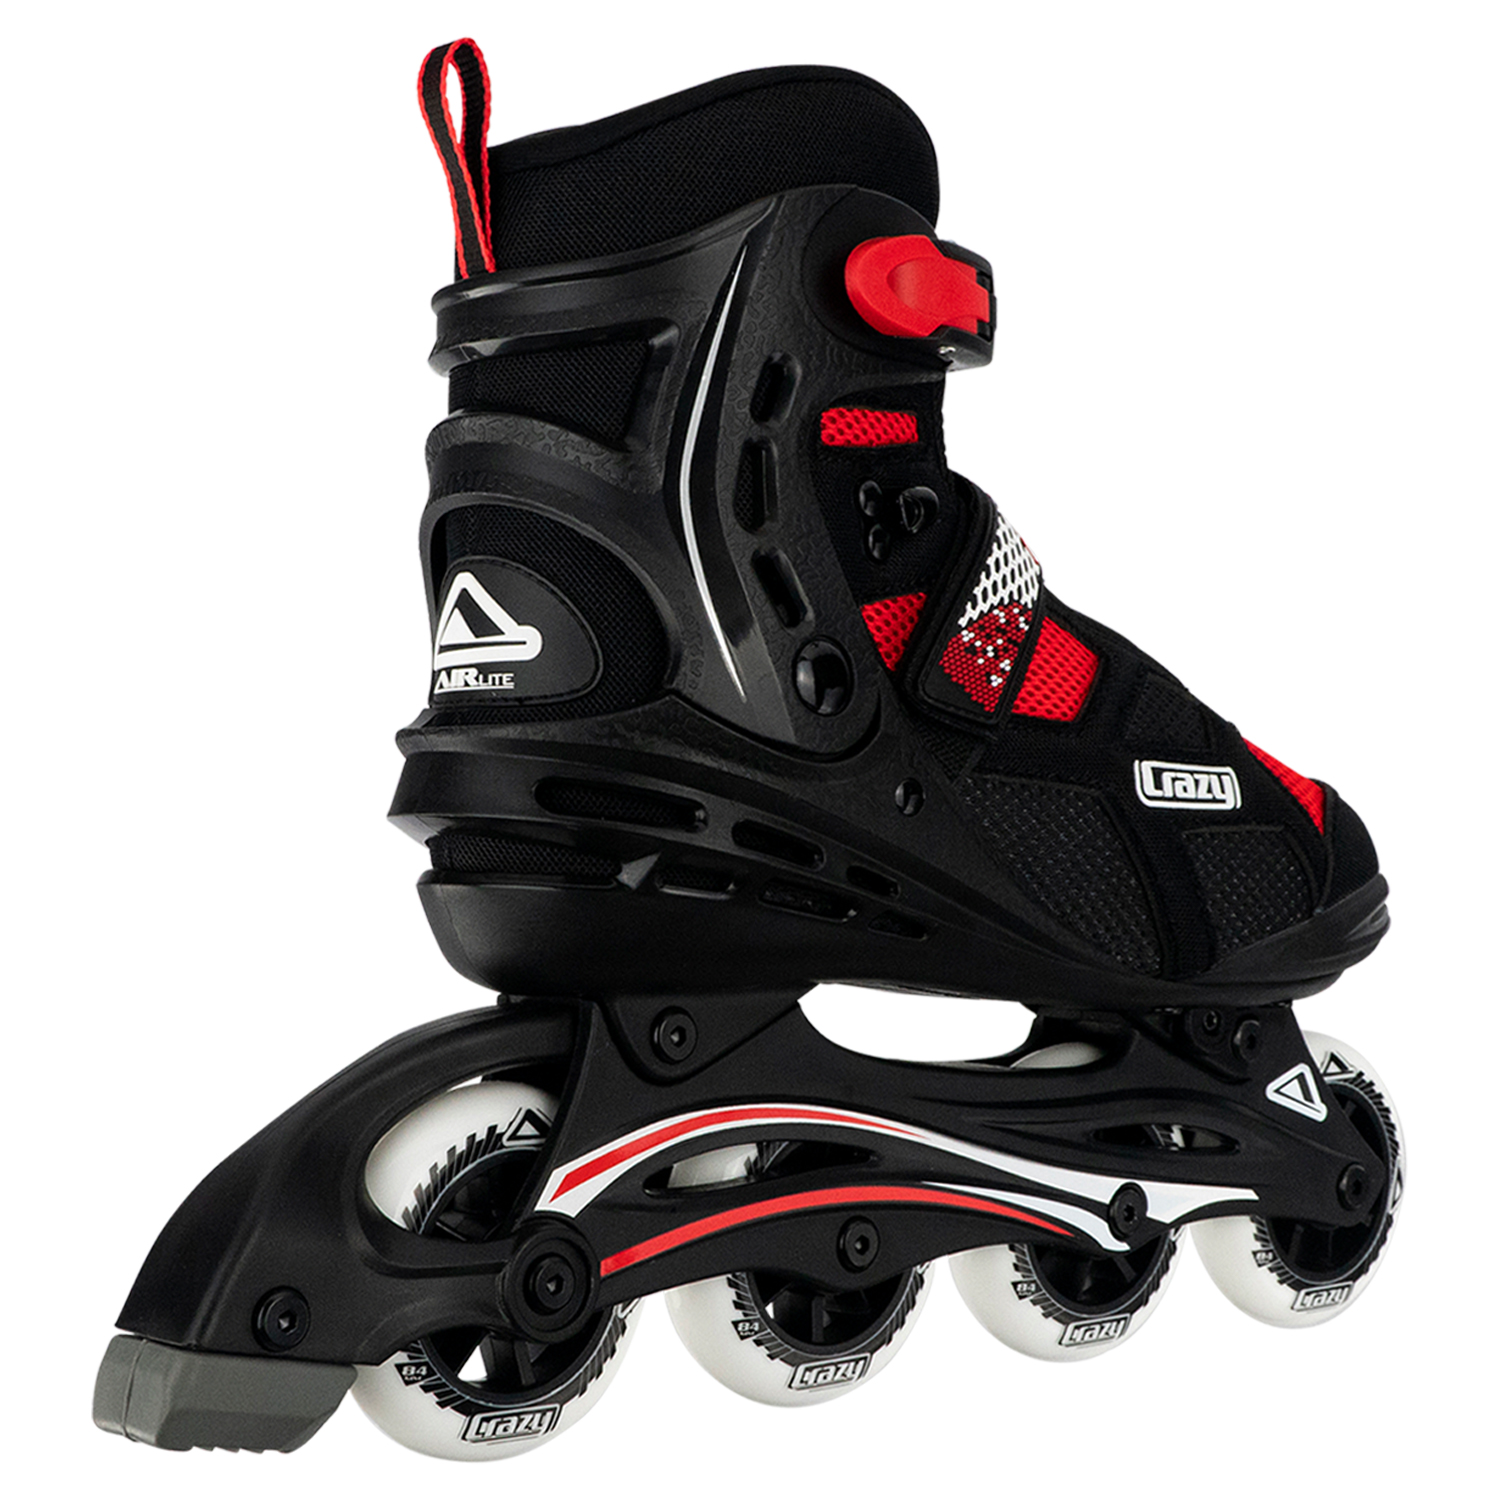 AIRlite Width Adjustable Inline Skates by Crazy SkatesAvailable in 2 Colors